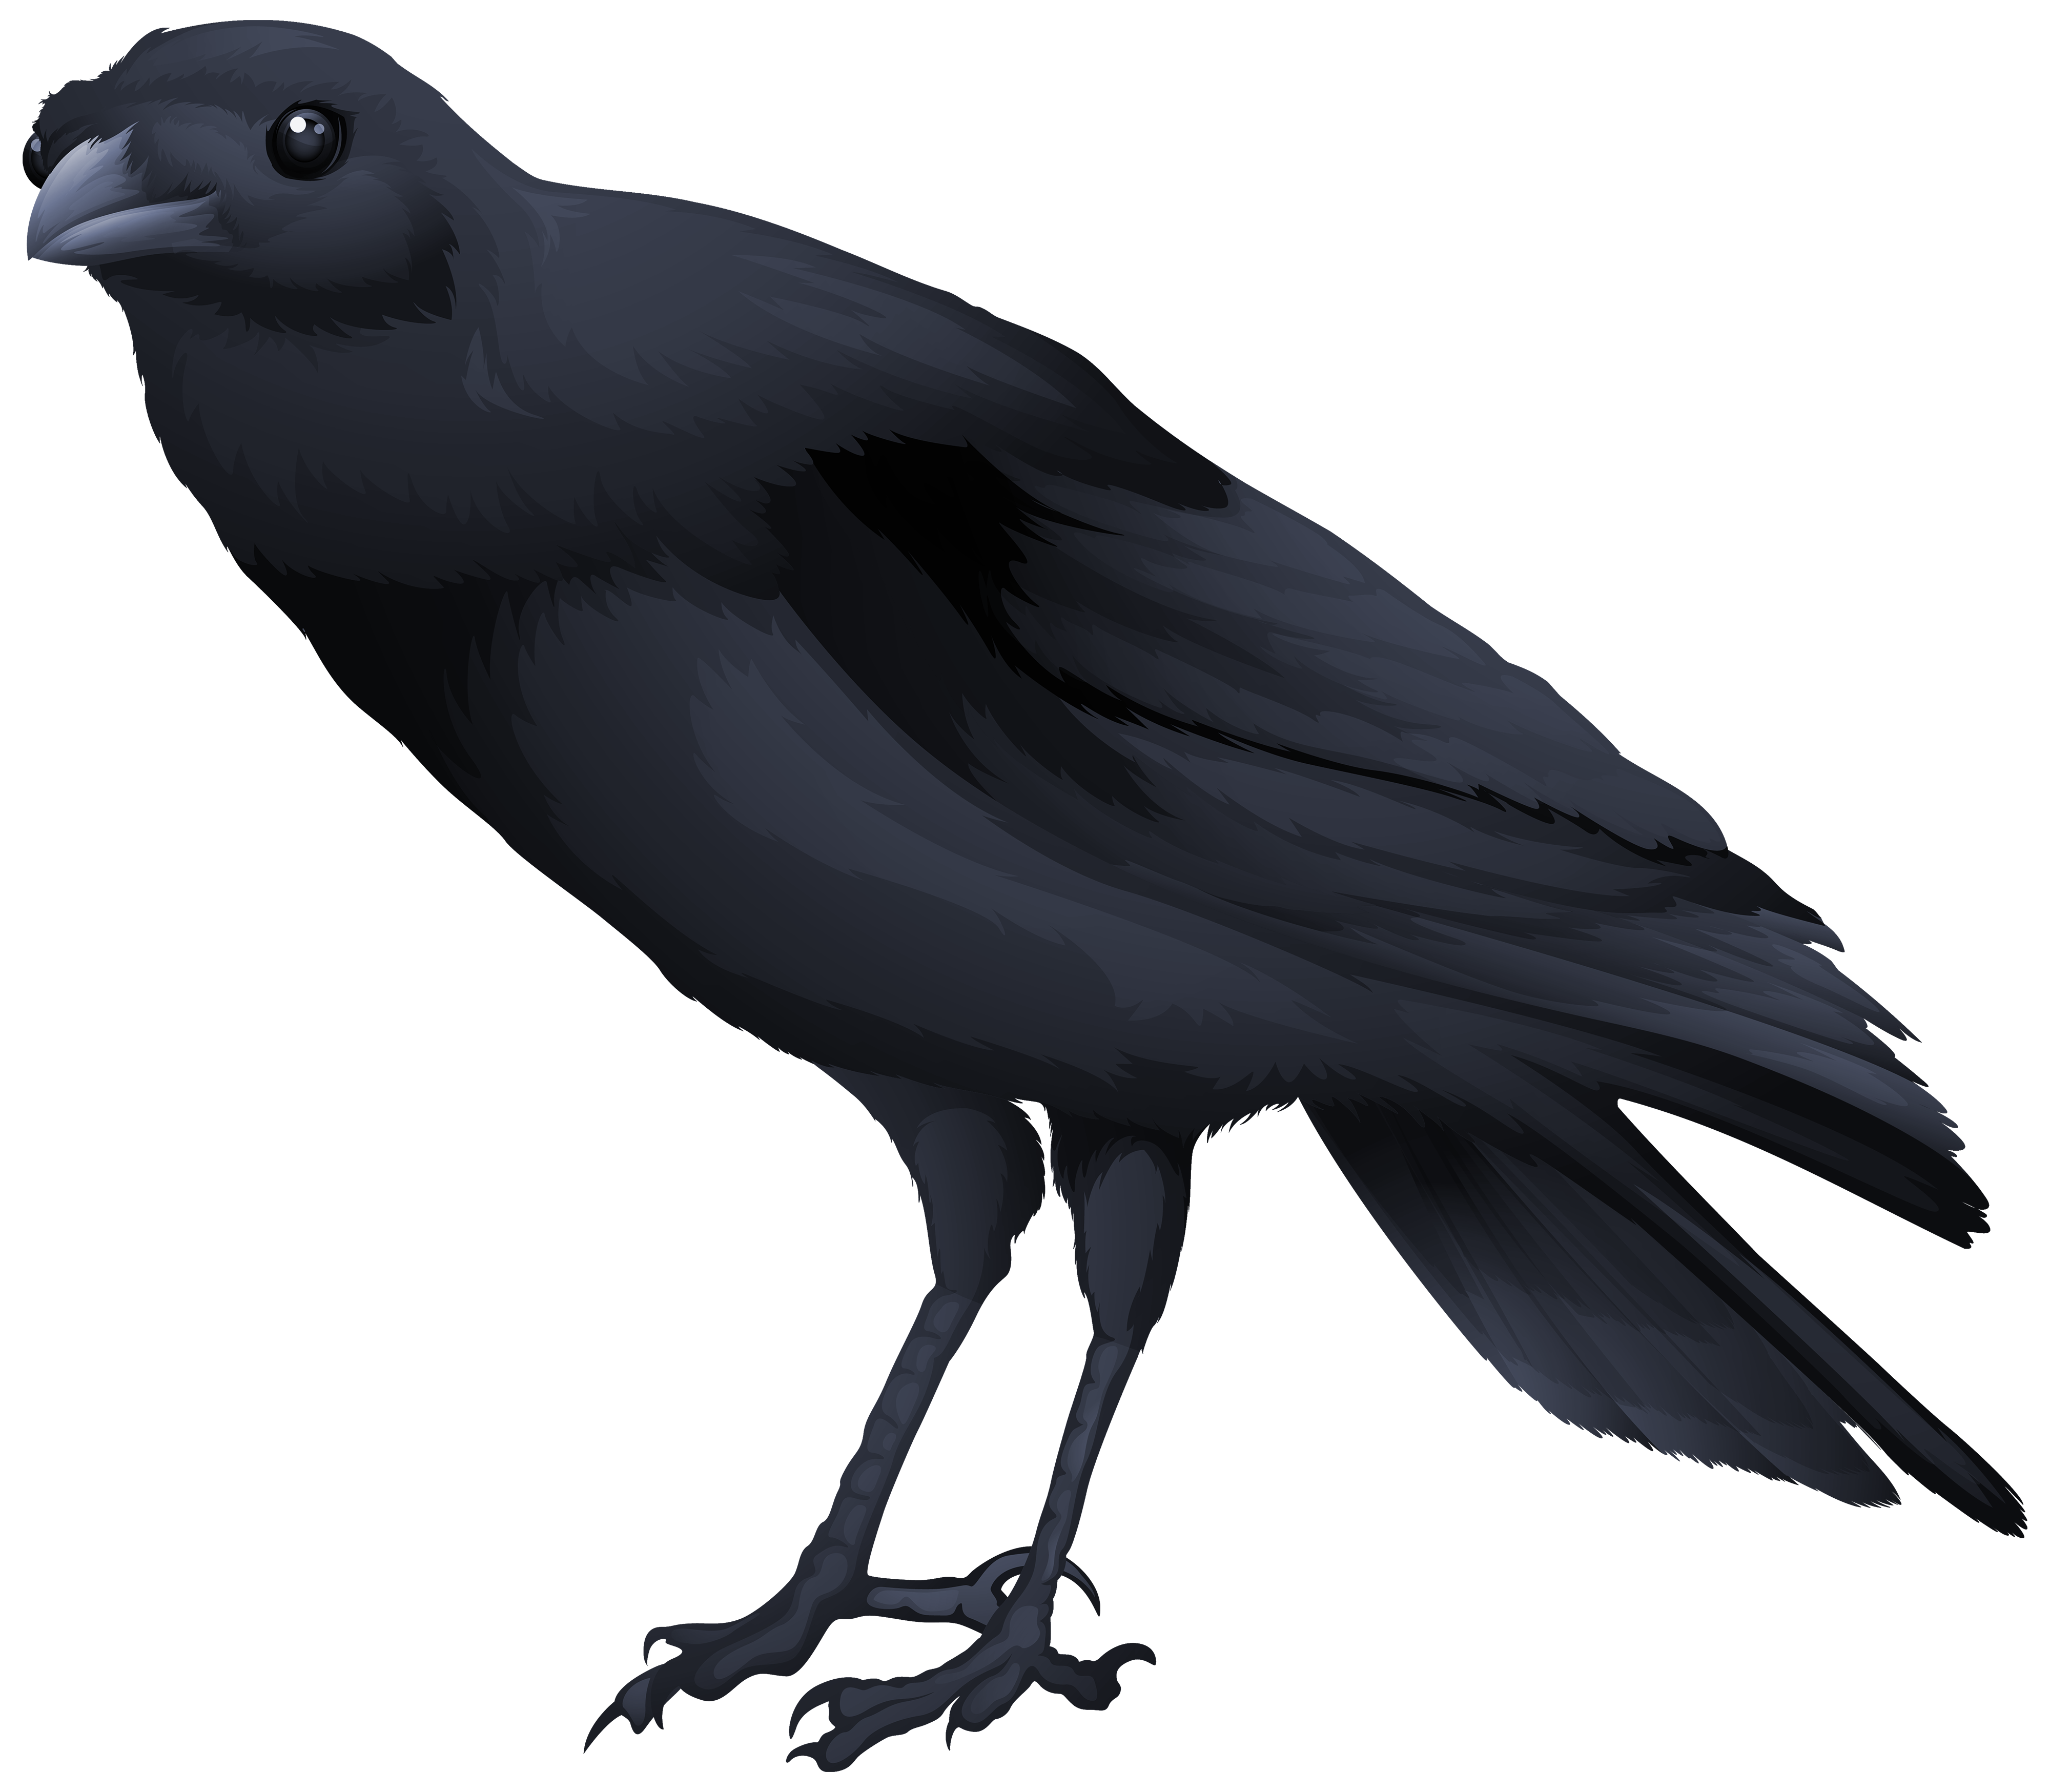 Black bird png. Clipart image gallery yopriceville